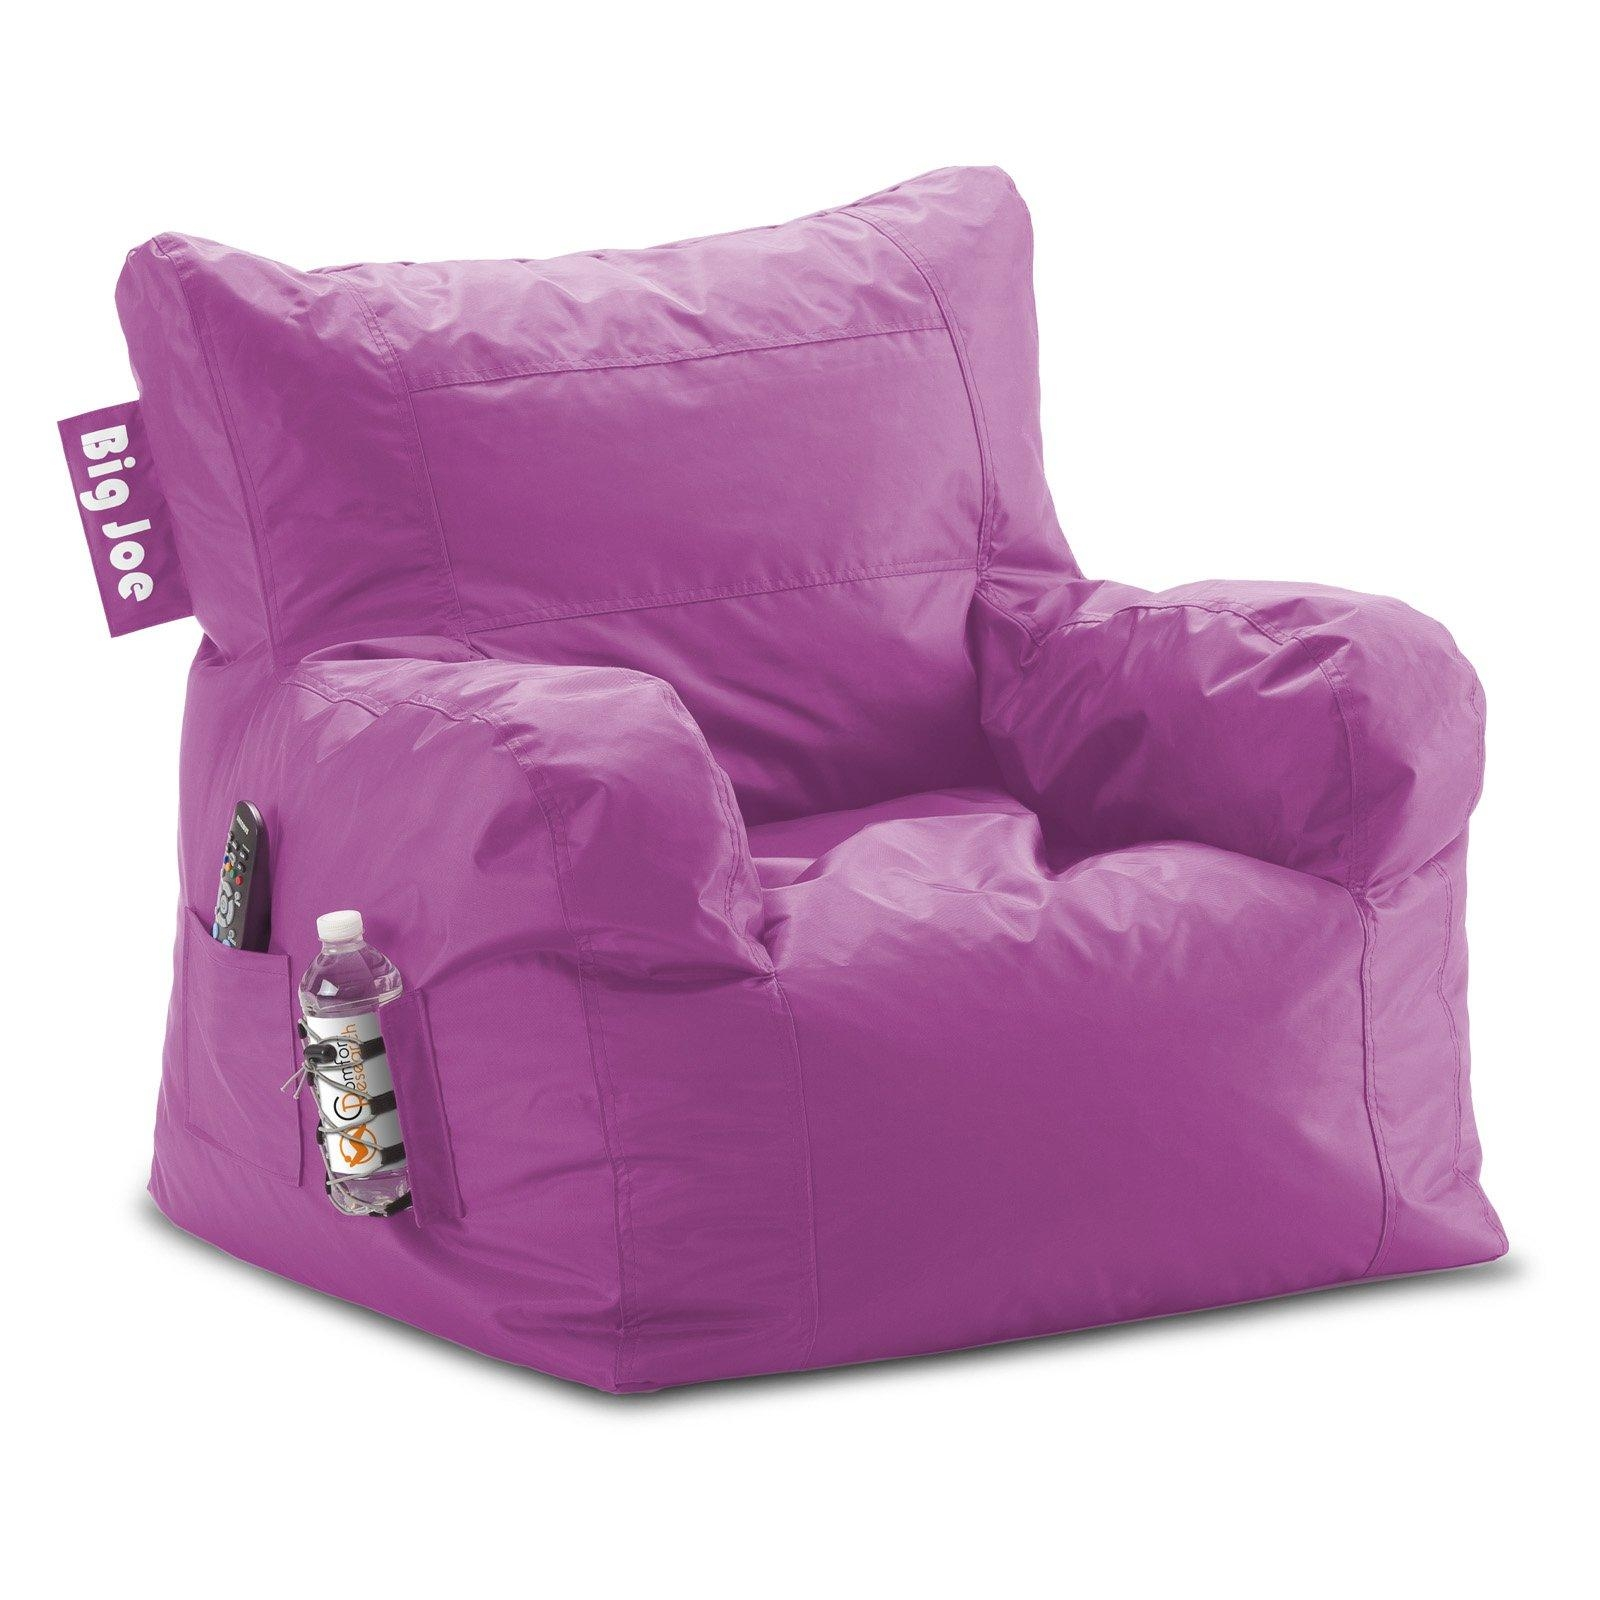 Big Joe Dorm Bean Bag Chair | Hayneedle In Bean Bag Sofas And Chairs (Image 4 of 20)